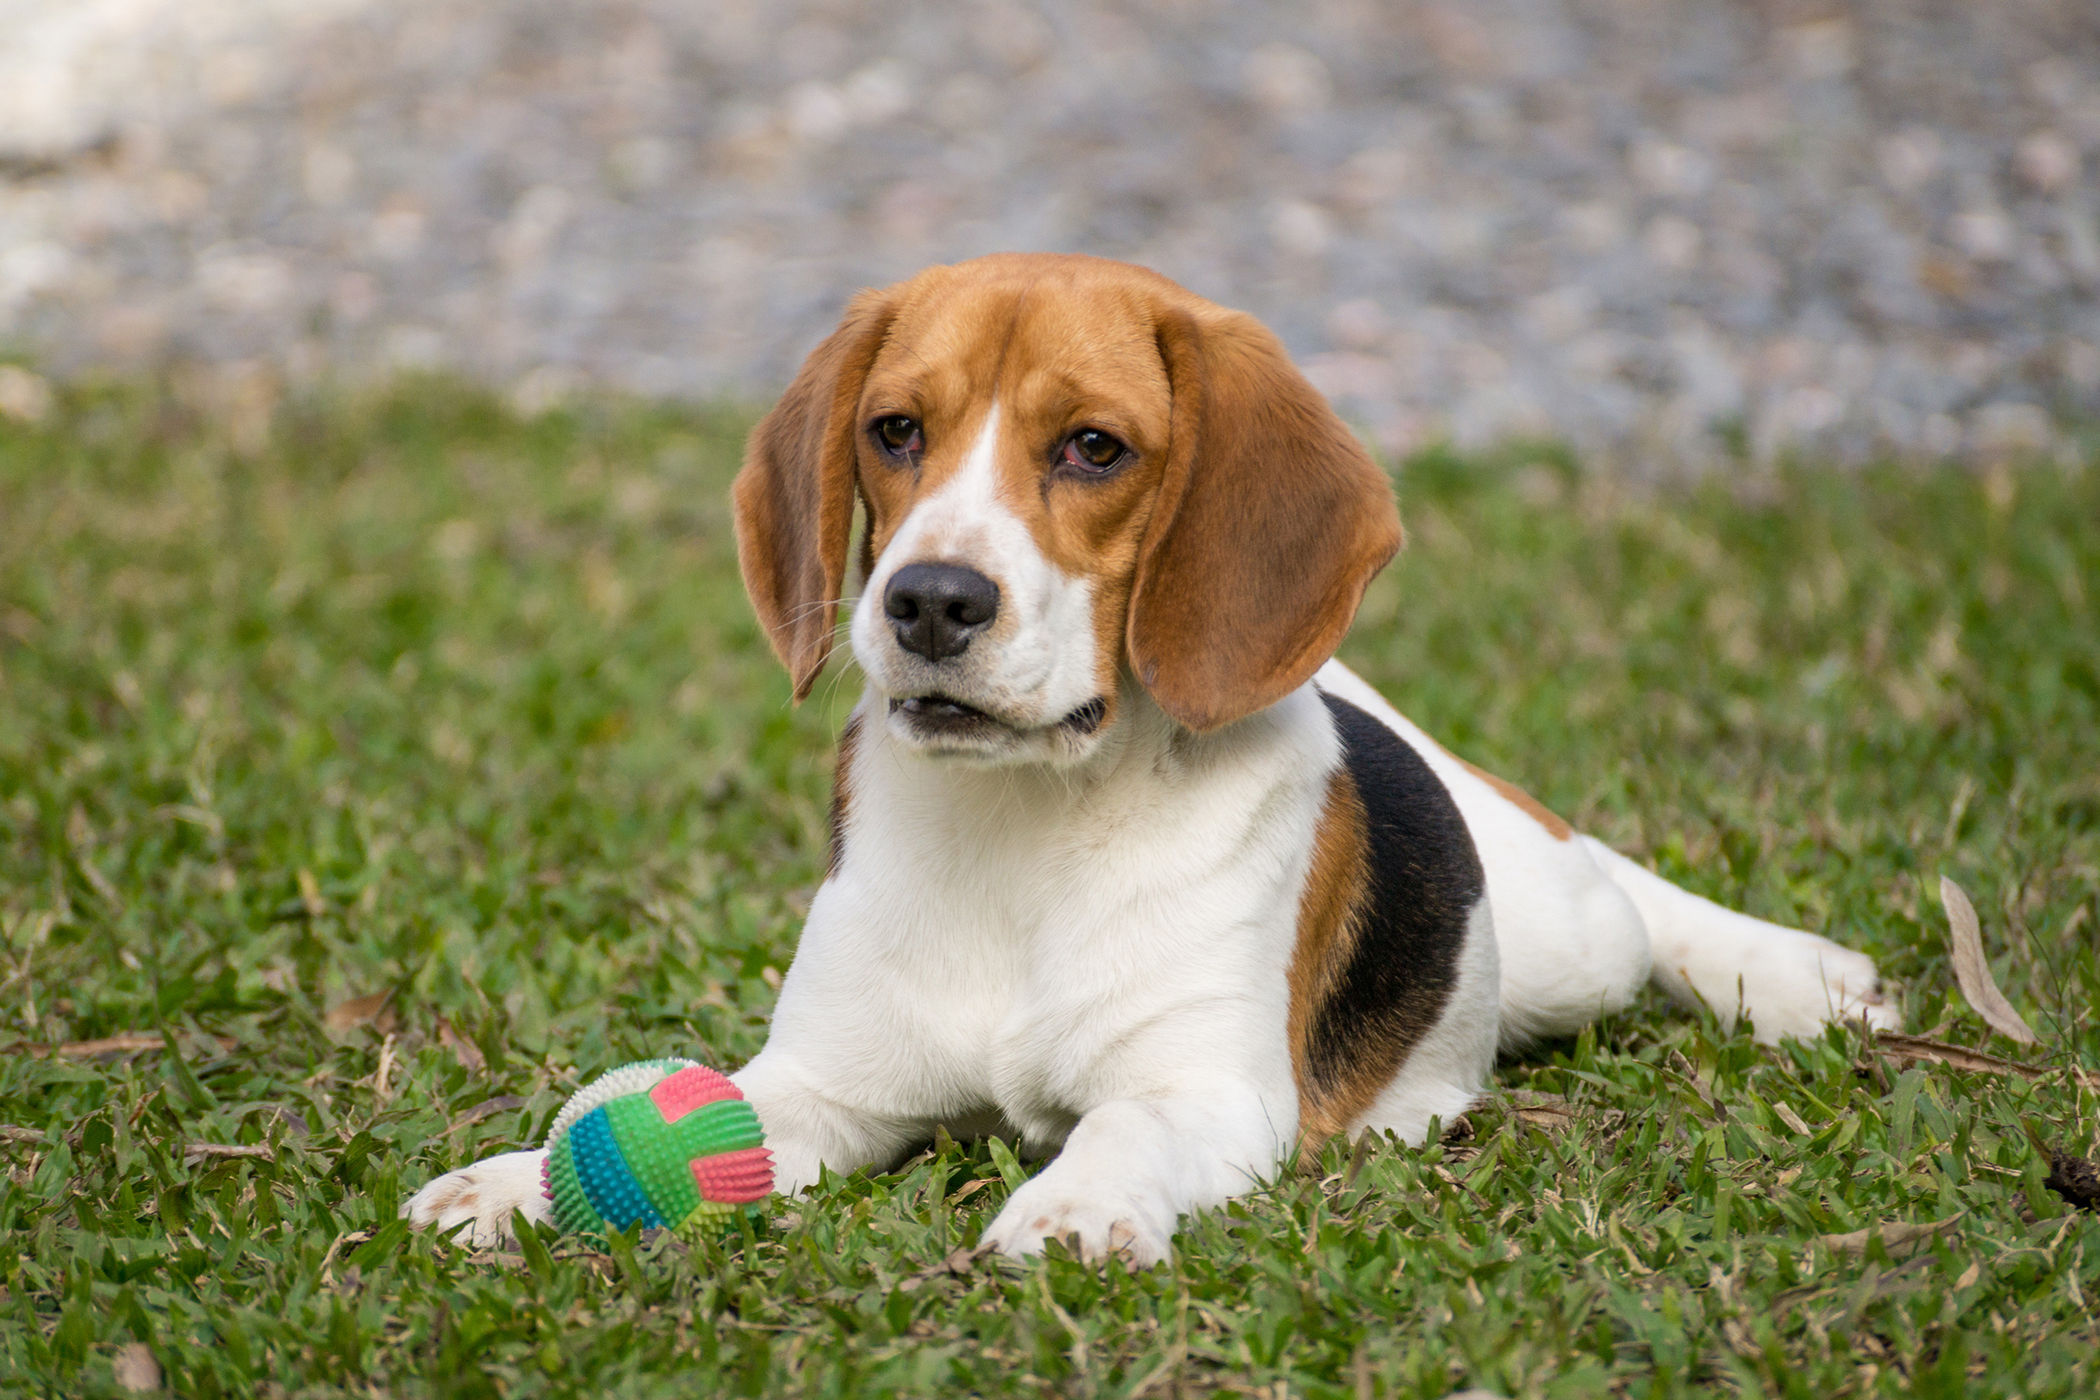 Cystic Biopsy in Dogs